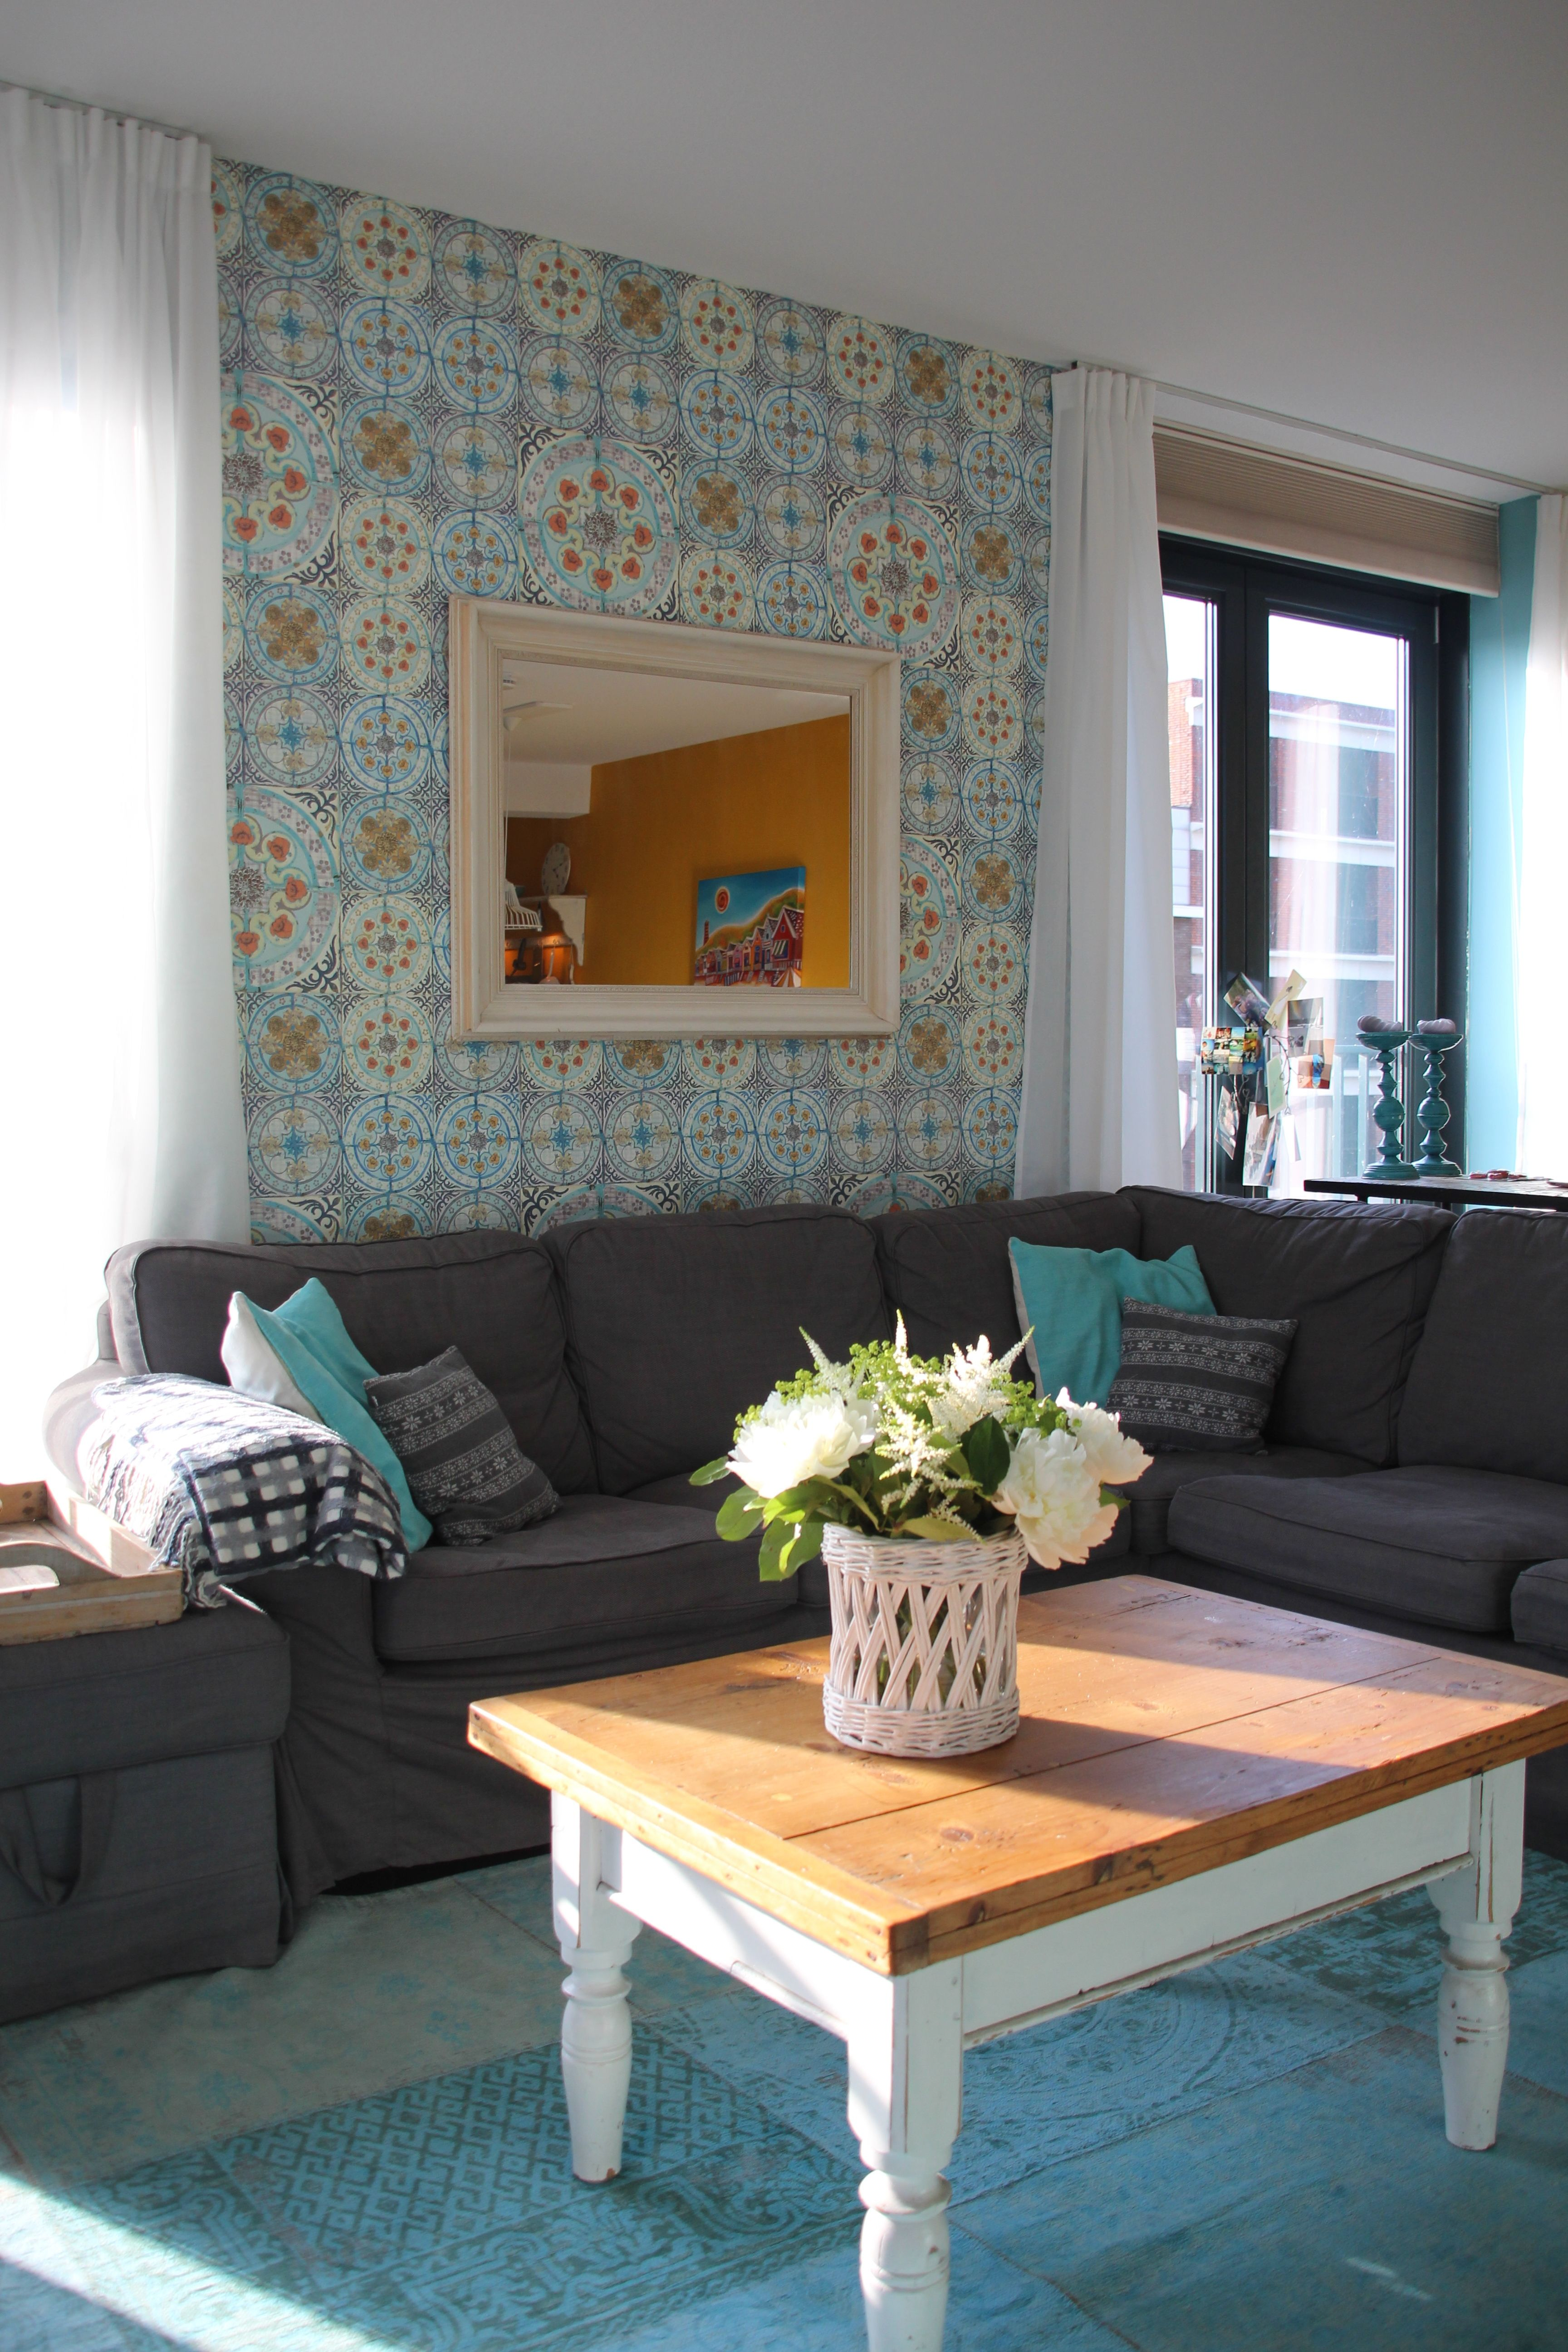 Vintage style tile wallpaper. Looks great in a lounge area